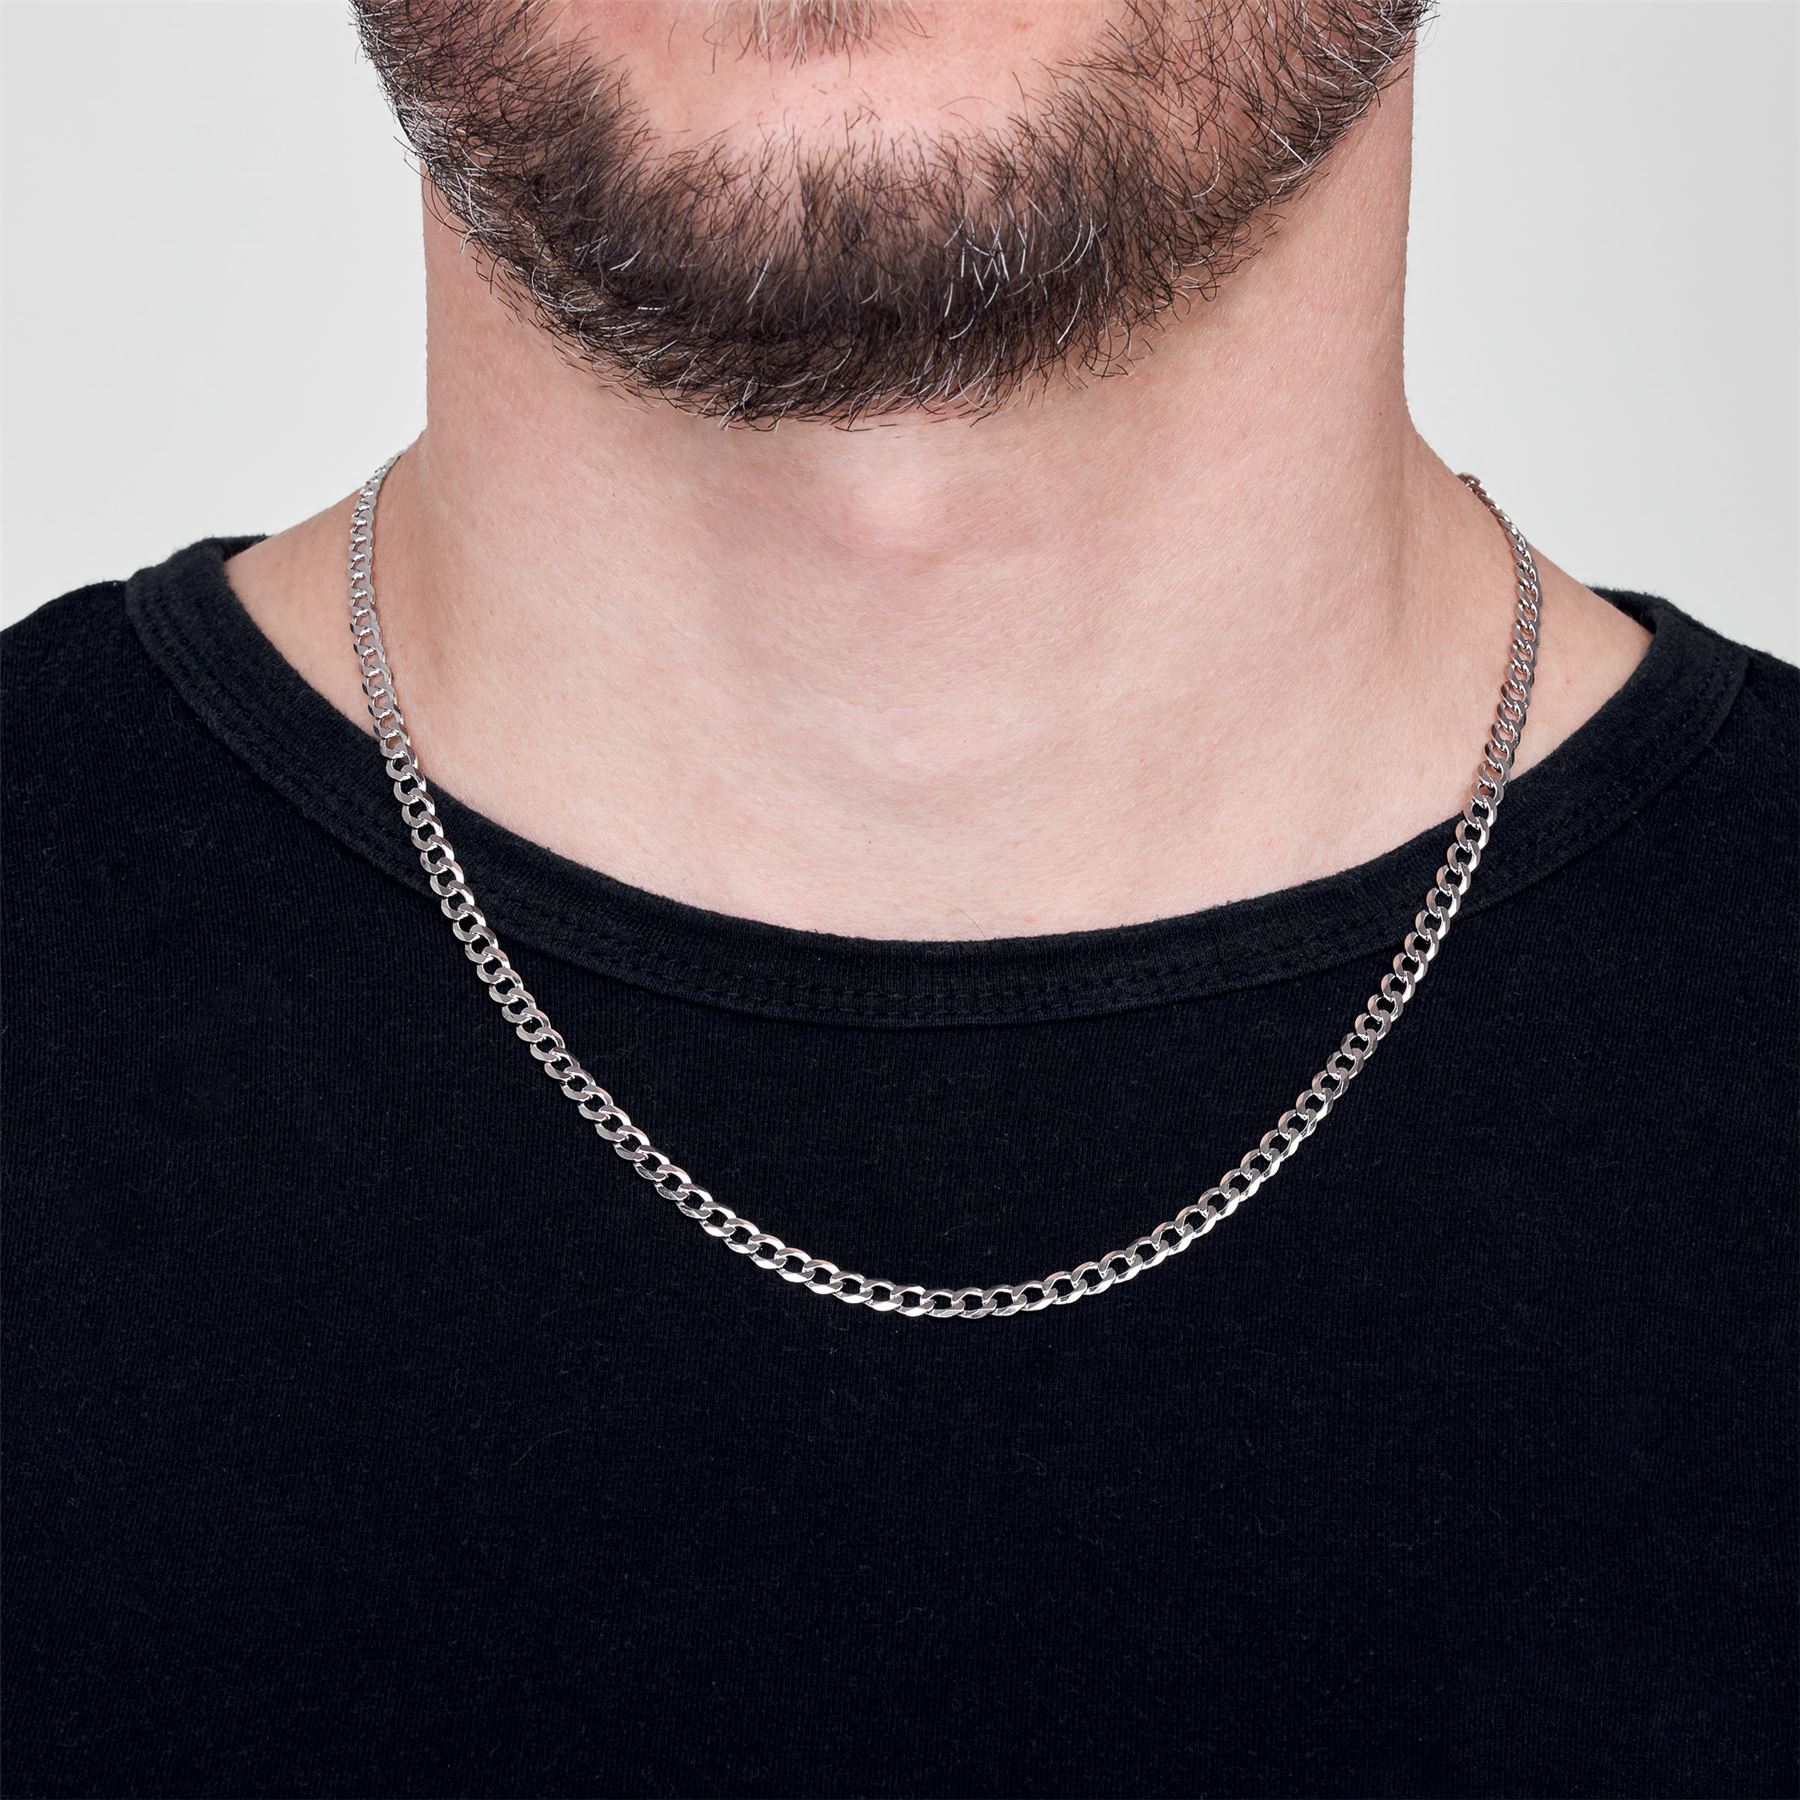 Amberta-925-Sterling-Silver-Link-Chain-Mens-Curb-Cuban-Necklace-ALL-SIZES-Italy thumbnail 22